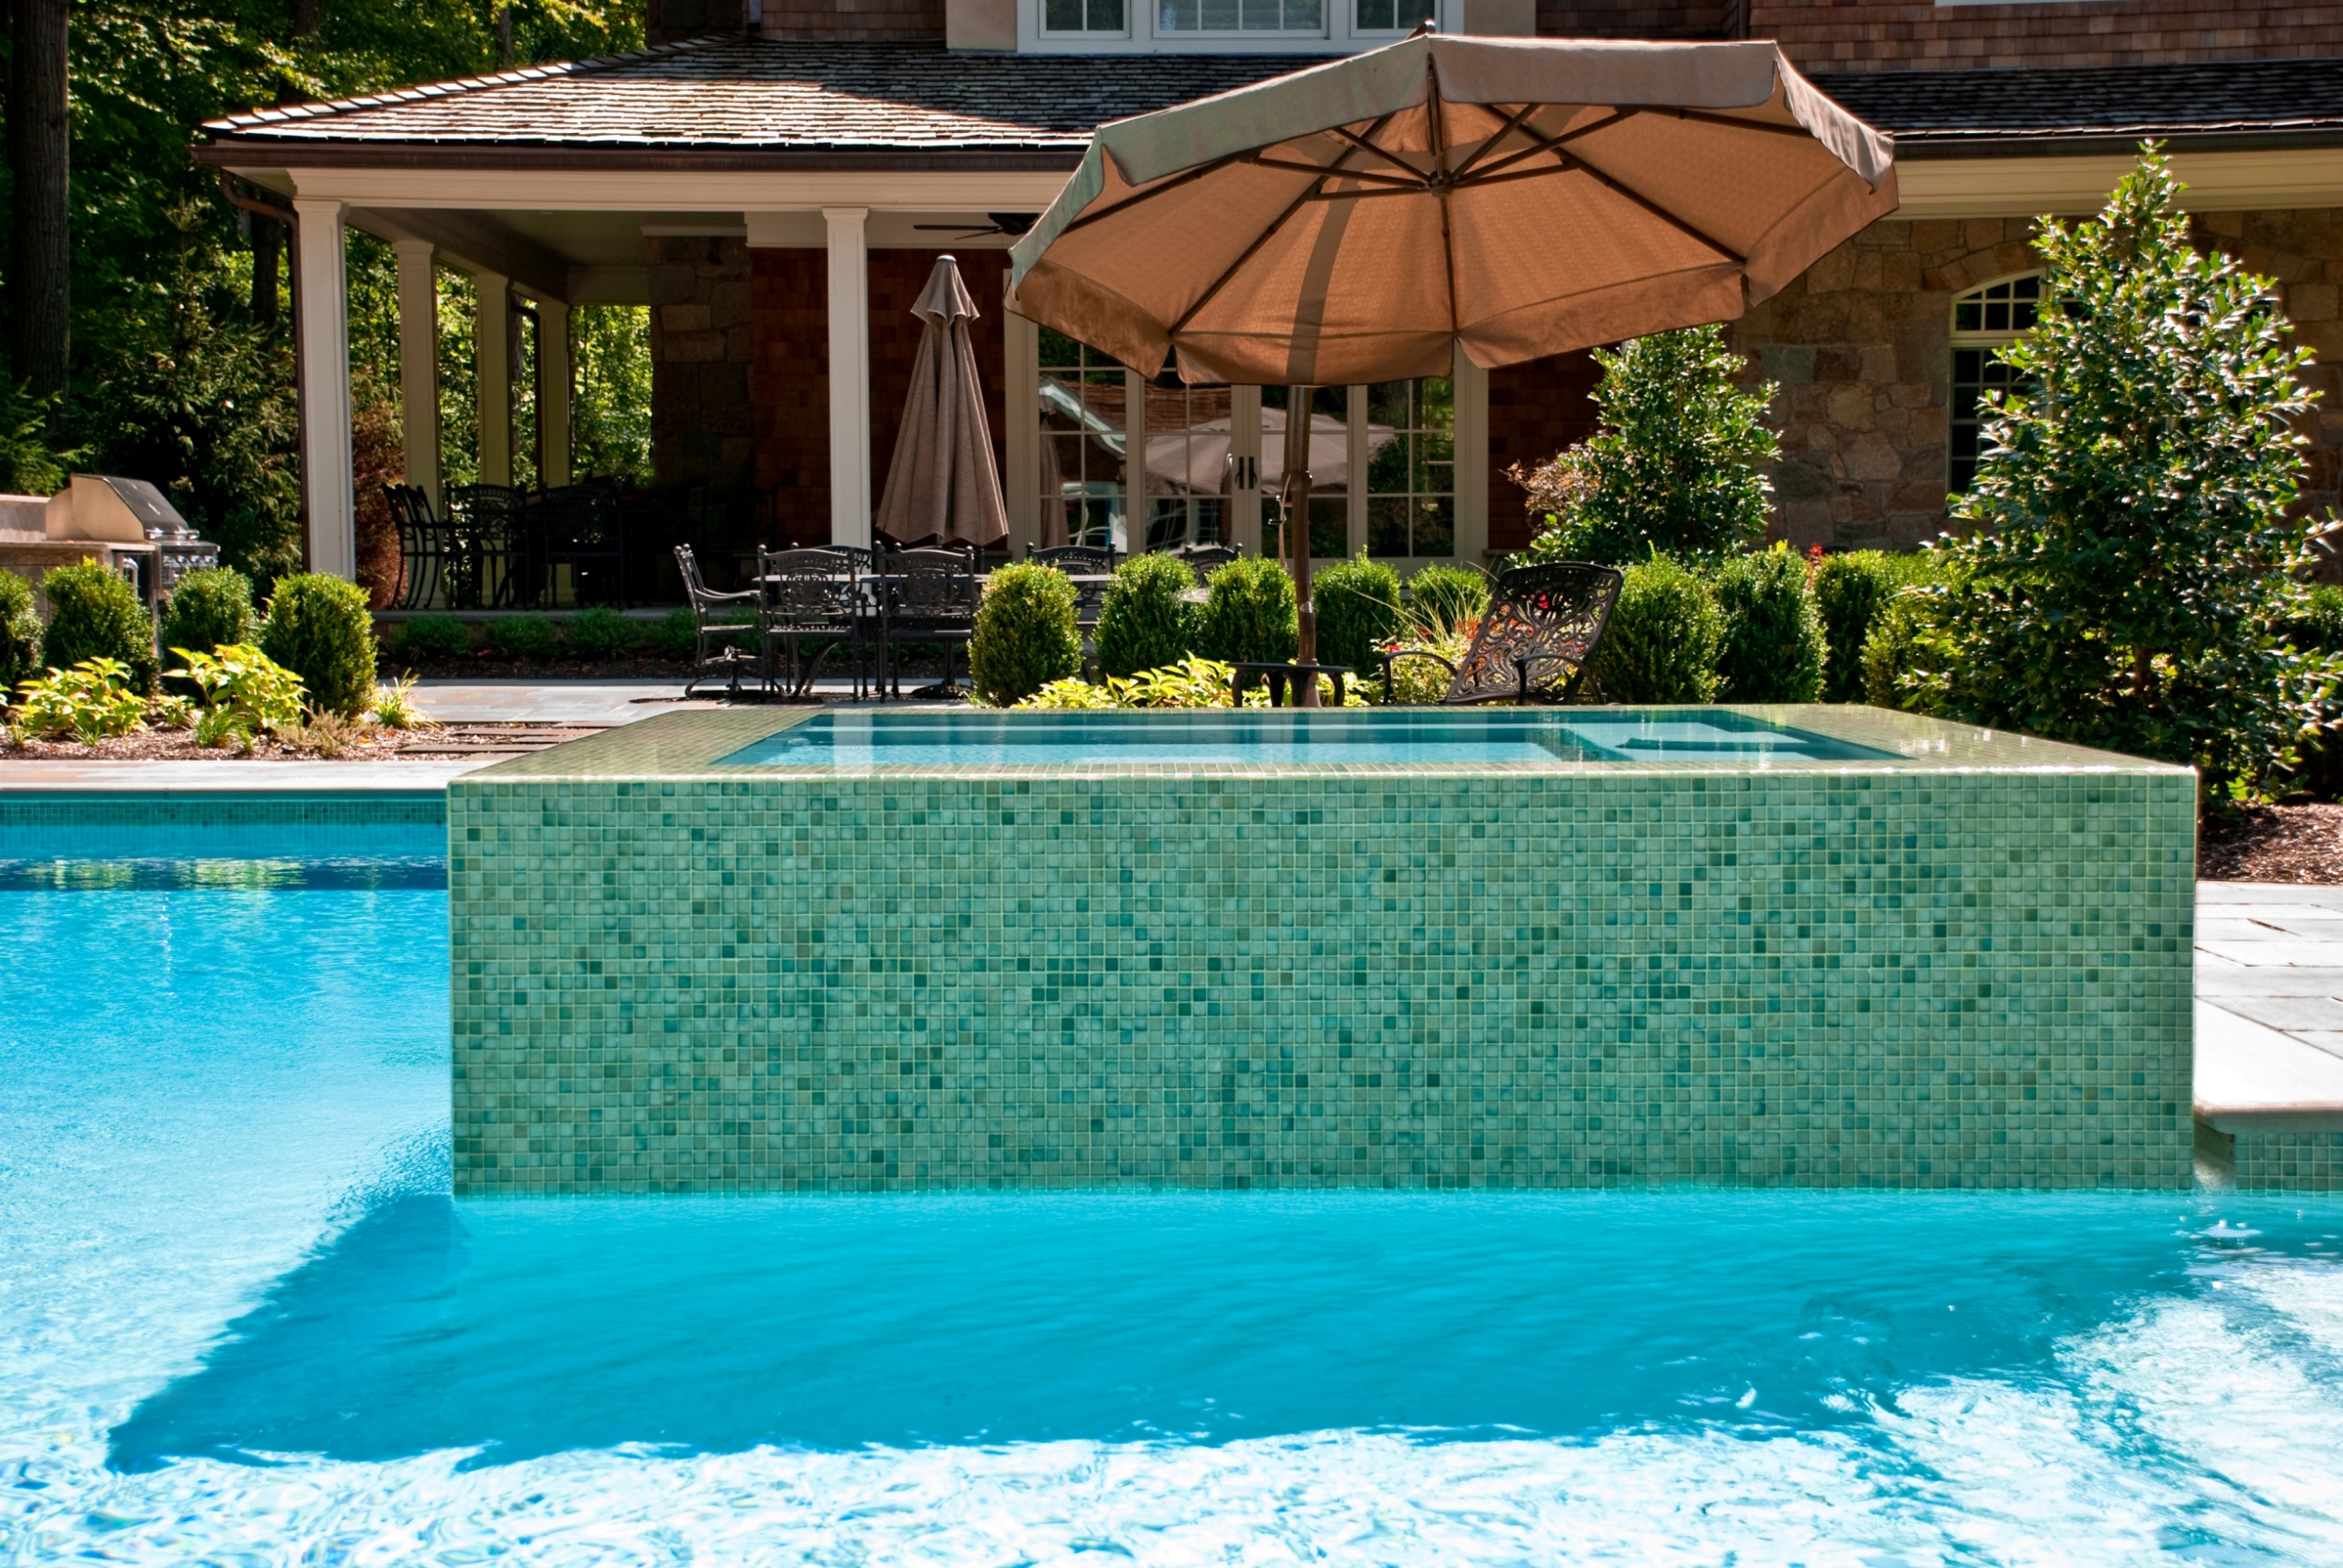 Nj perimeter overflow pool and spa by cipriano custom for Custom pool and spa